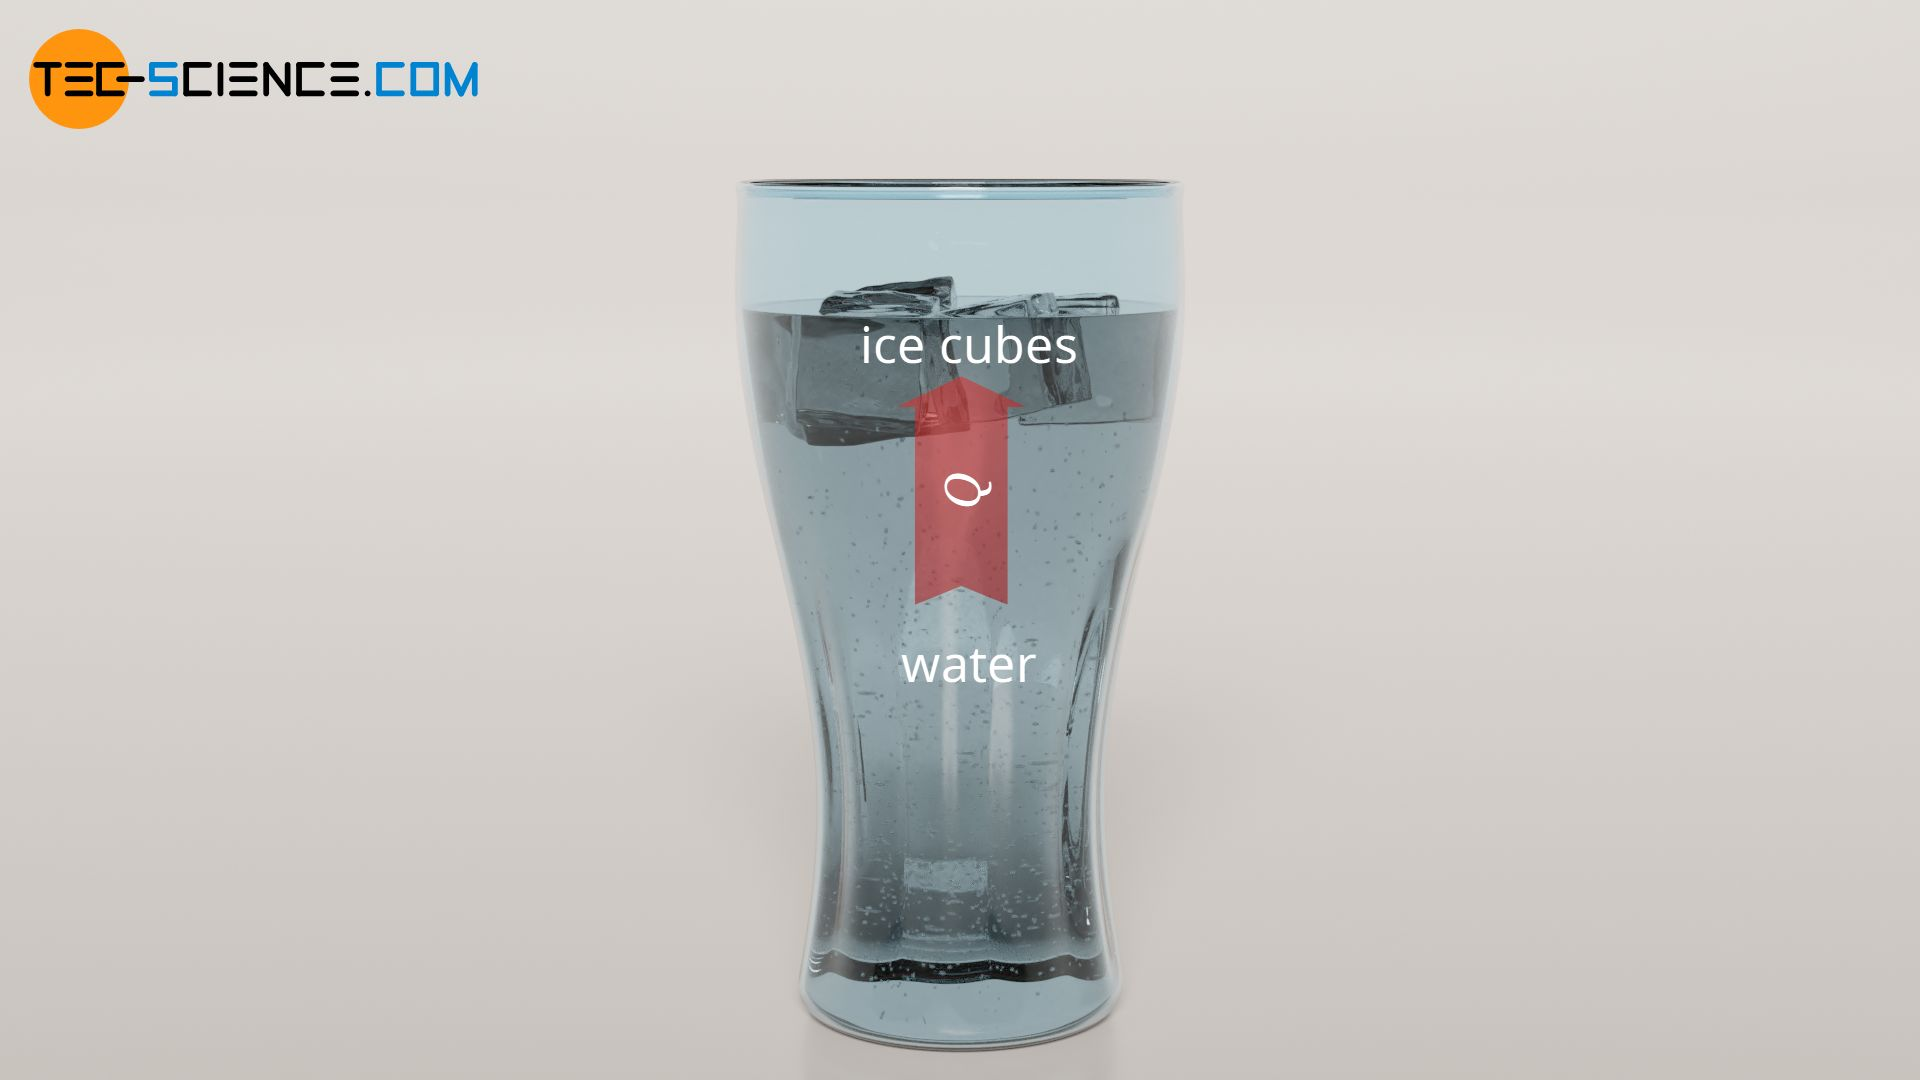 Reducing the temperature of water by releasing energy as heat to ice cubes